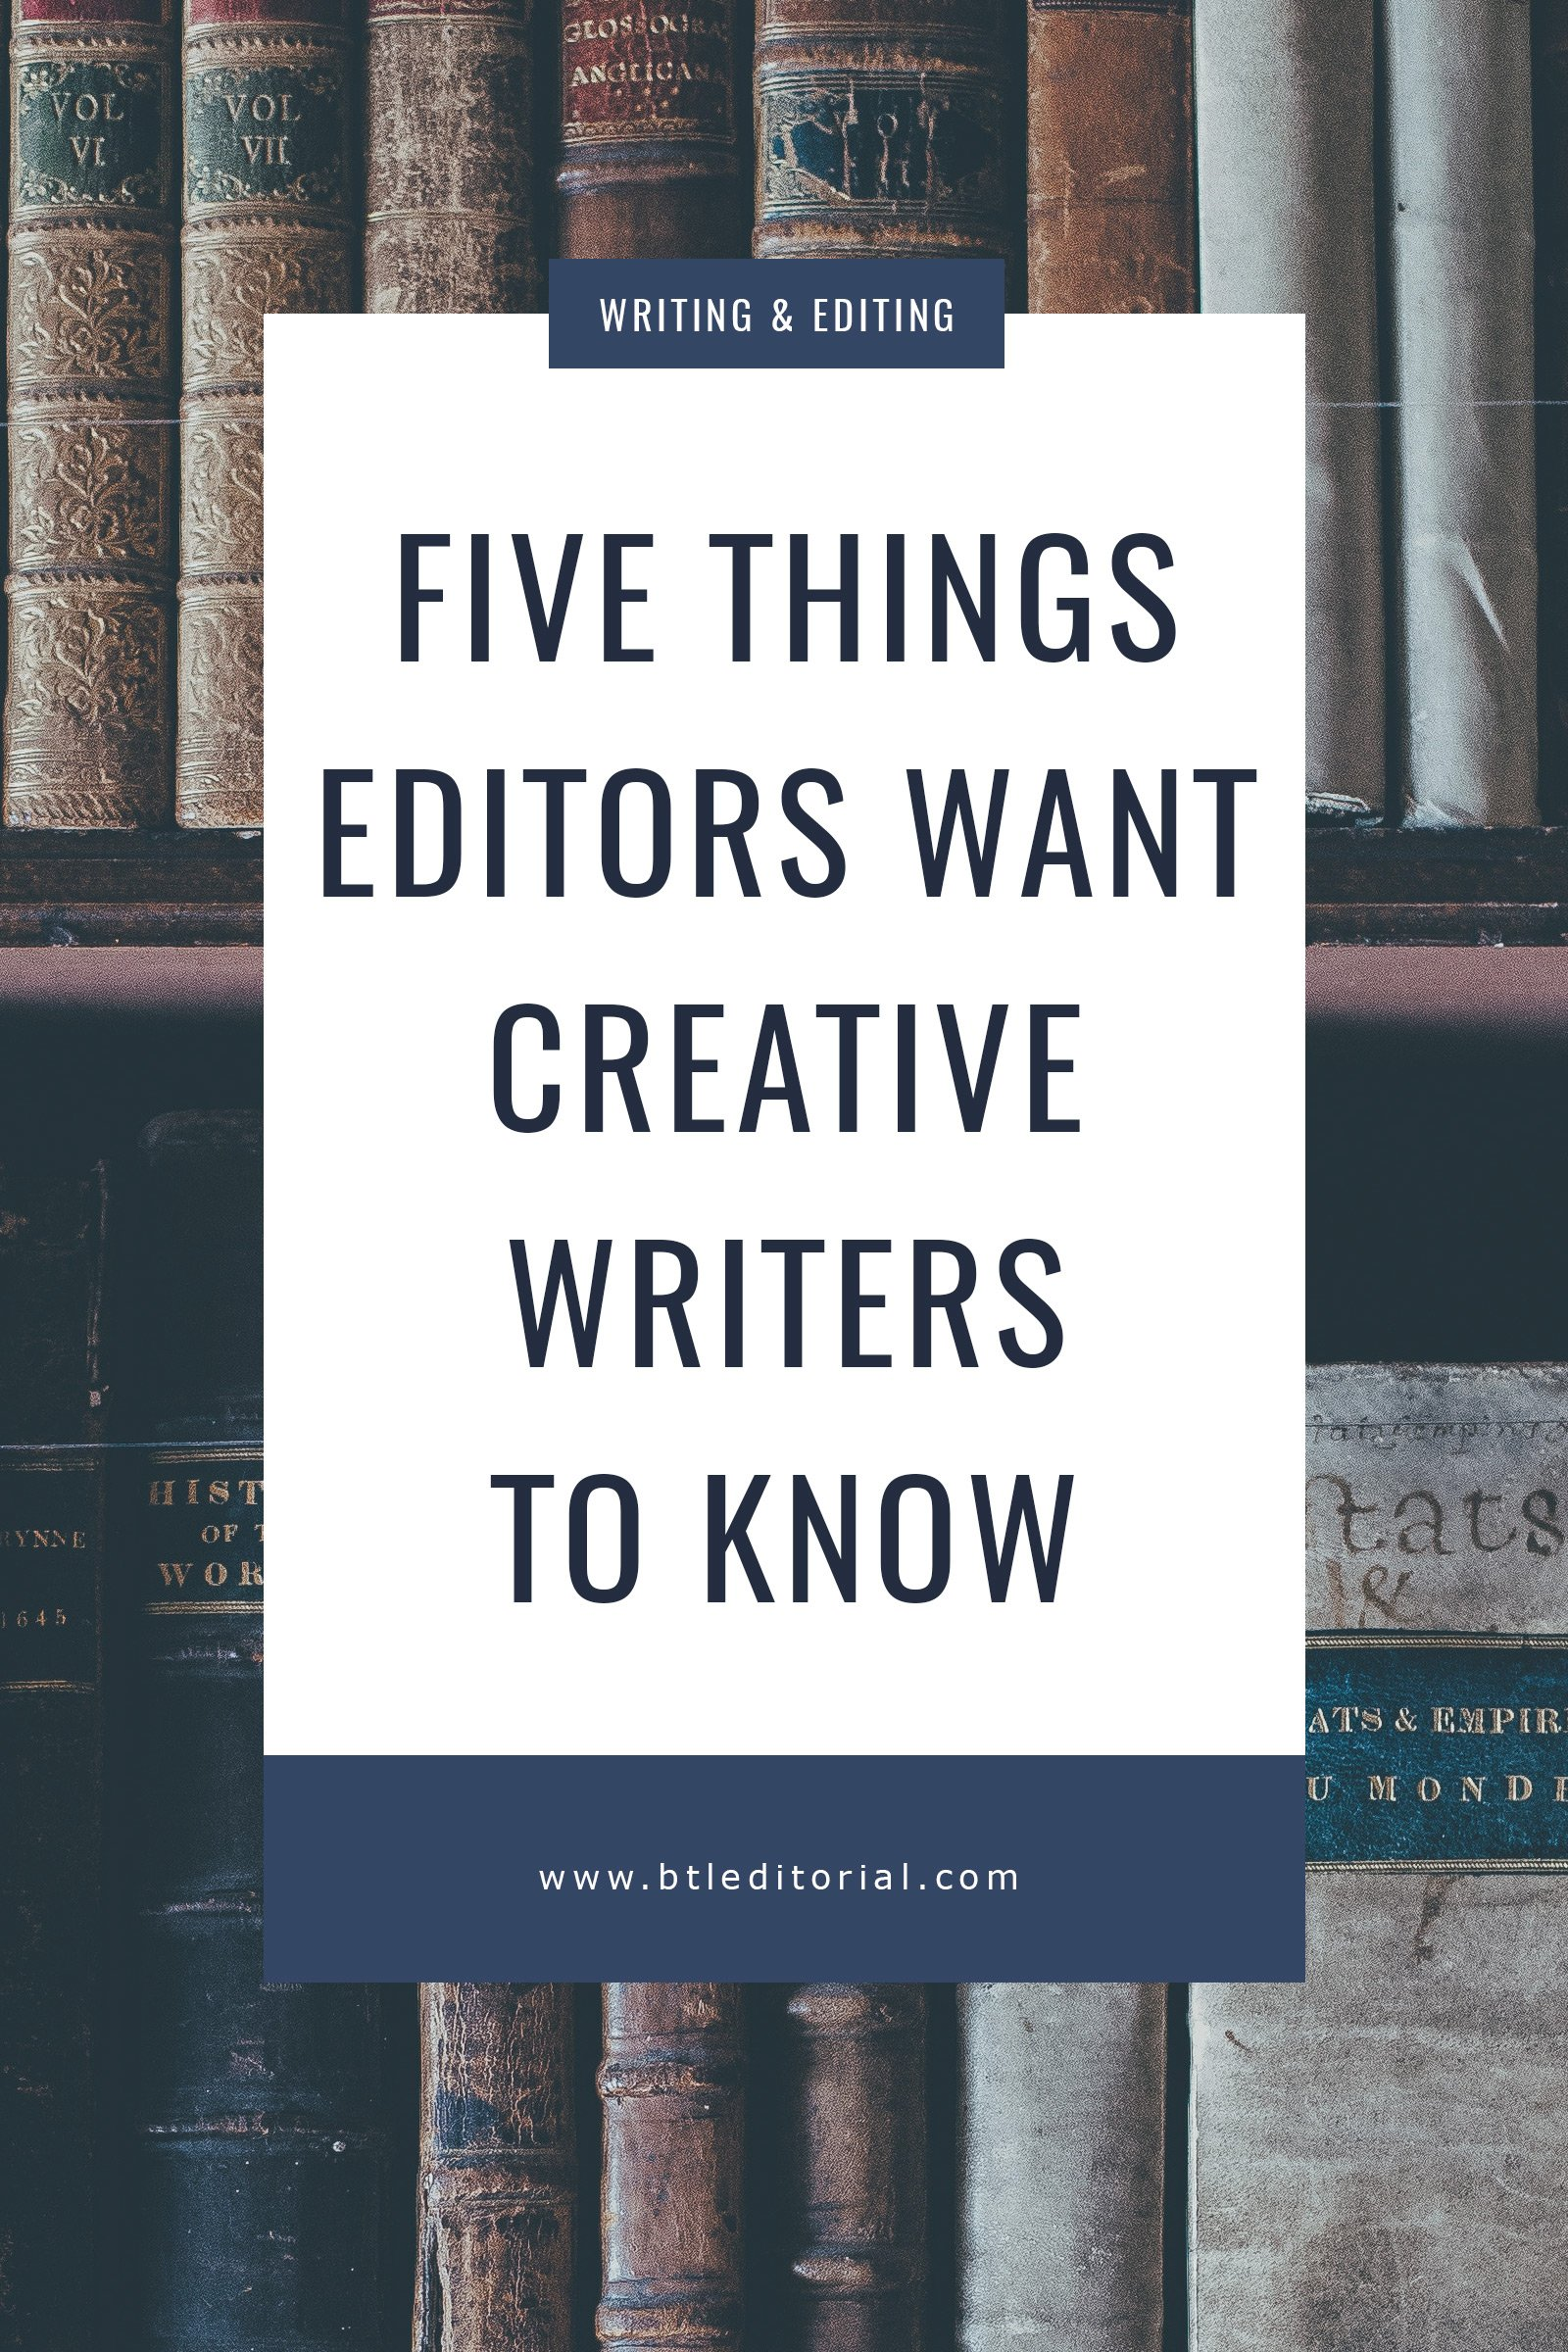 Five Things Editors Wish Creative Writers Knew | Between the Lines Editorial